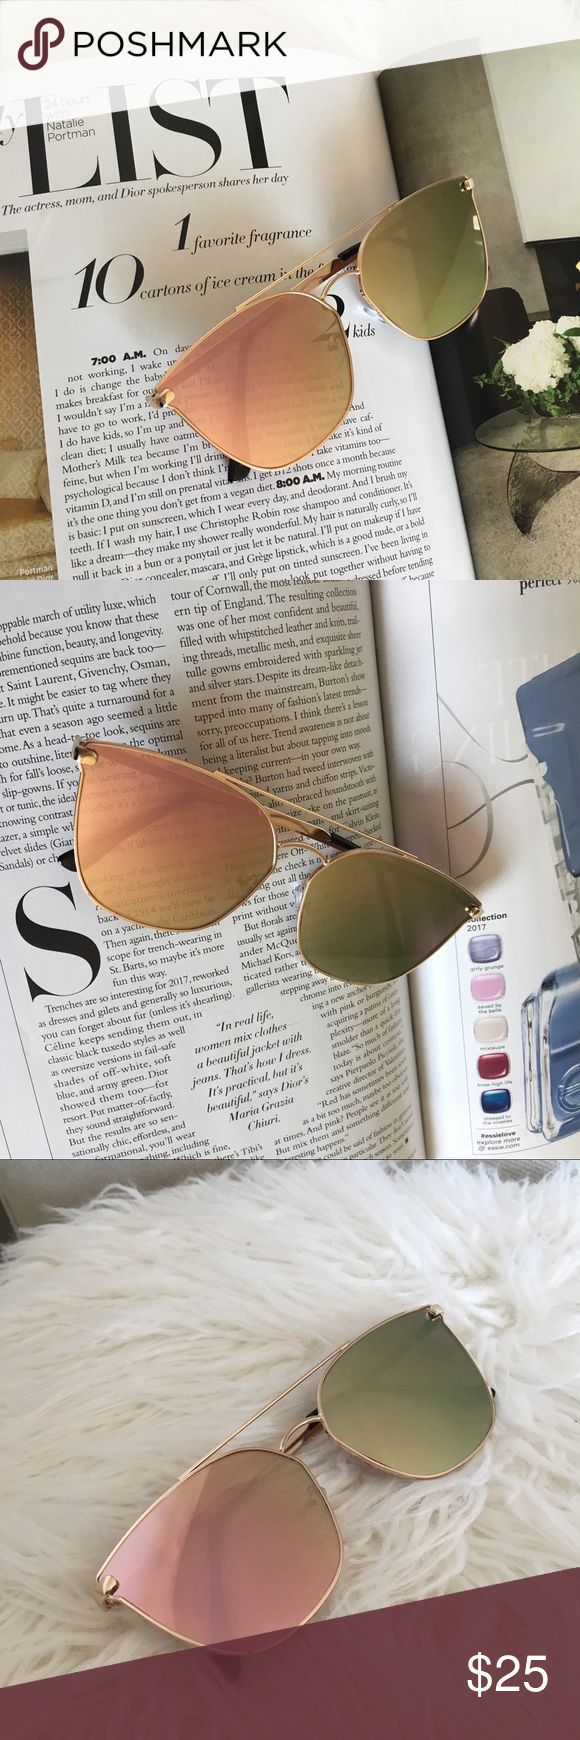 Rose Gold Mirror Sunglasses With Pink Lenses Fun and sleek rose gold mirrored sunglasses with cat eye style. PInk mirror lenses. UV protection. New boutique item. moxiefromroxie Accessories Sunglasses